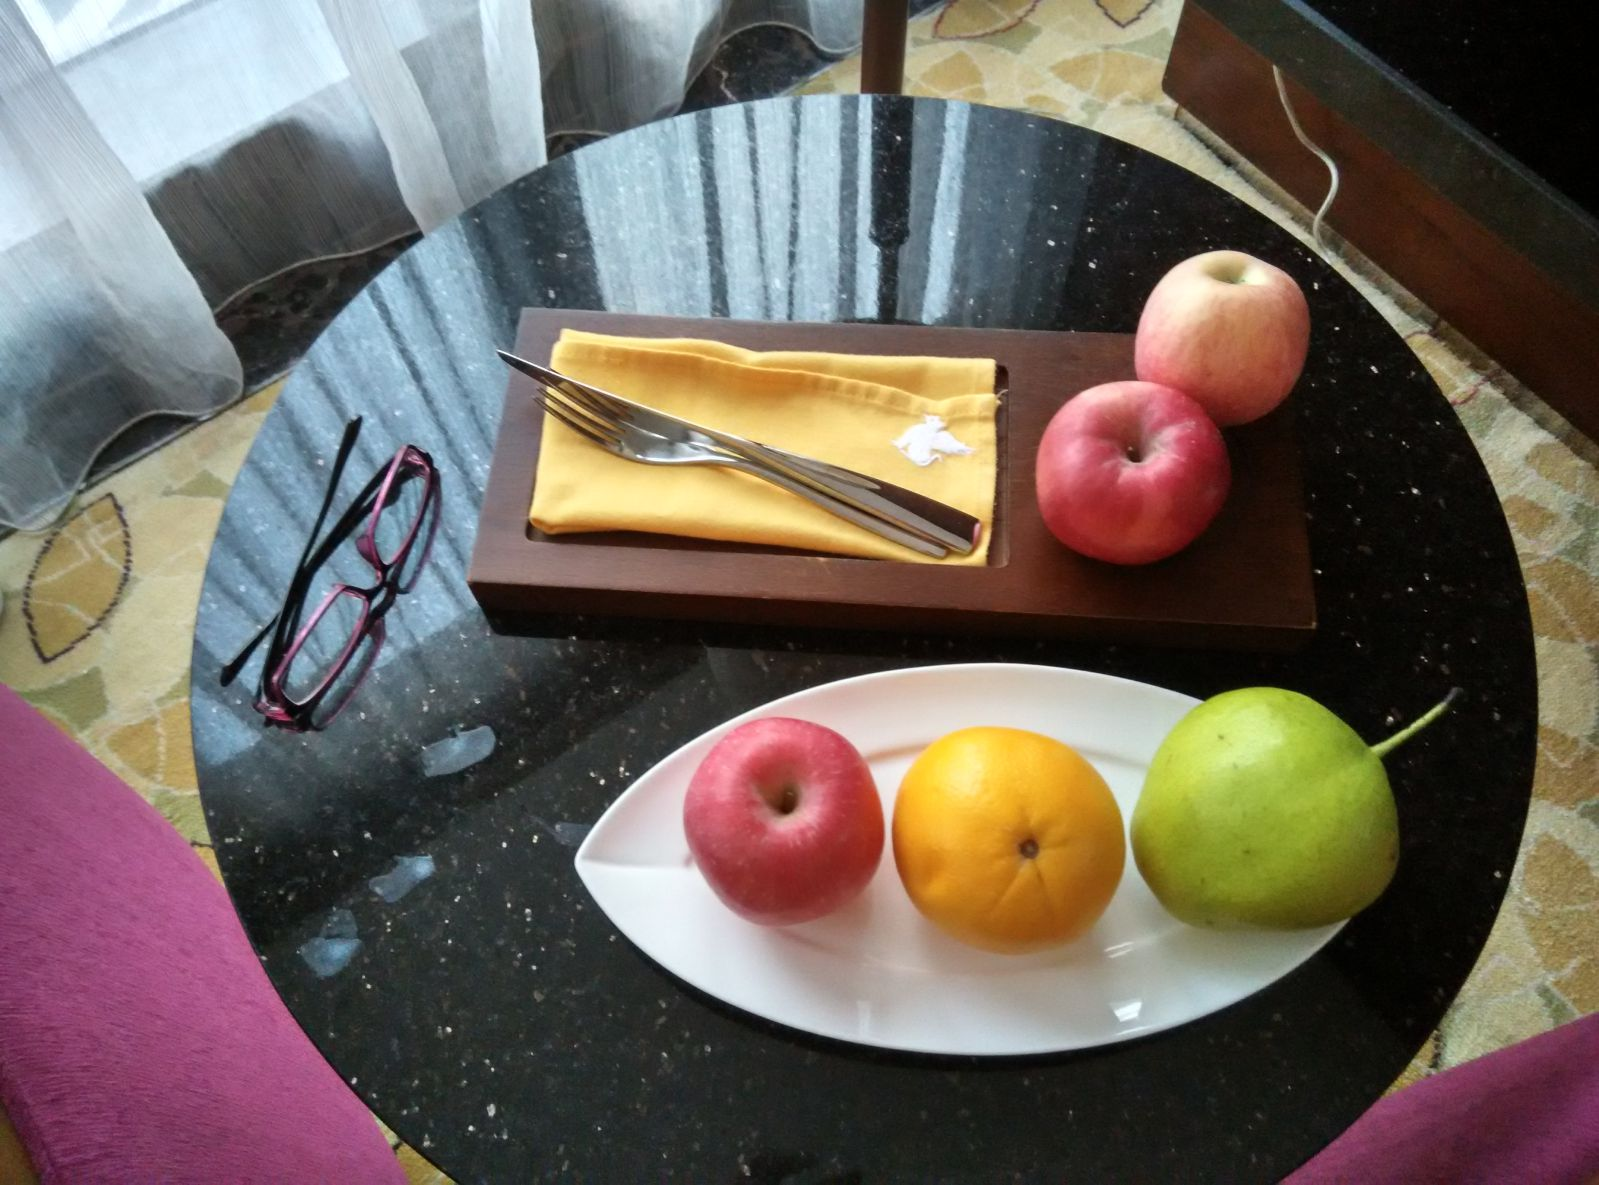 shenzhen-jw-marriott-welcome-fruit